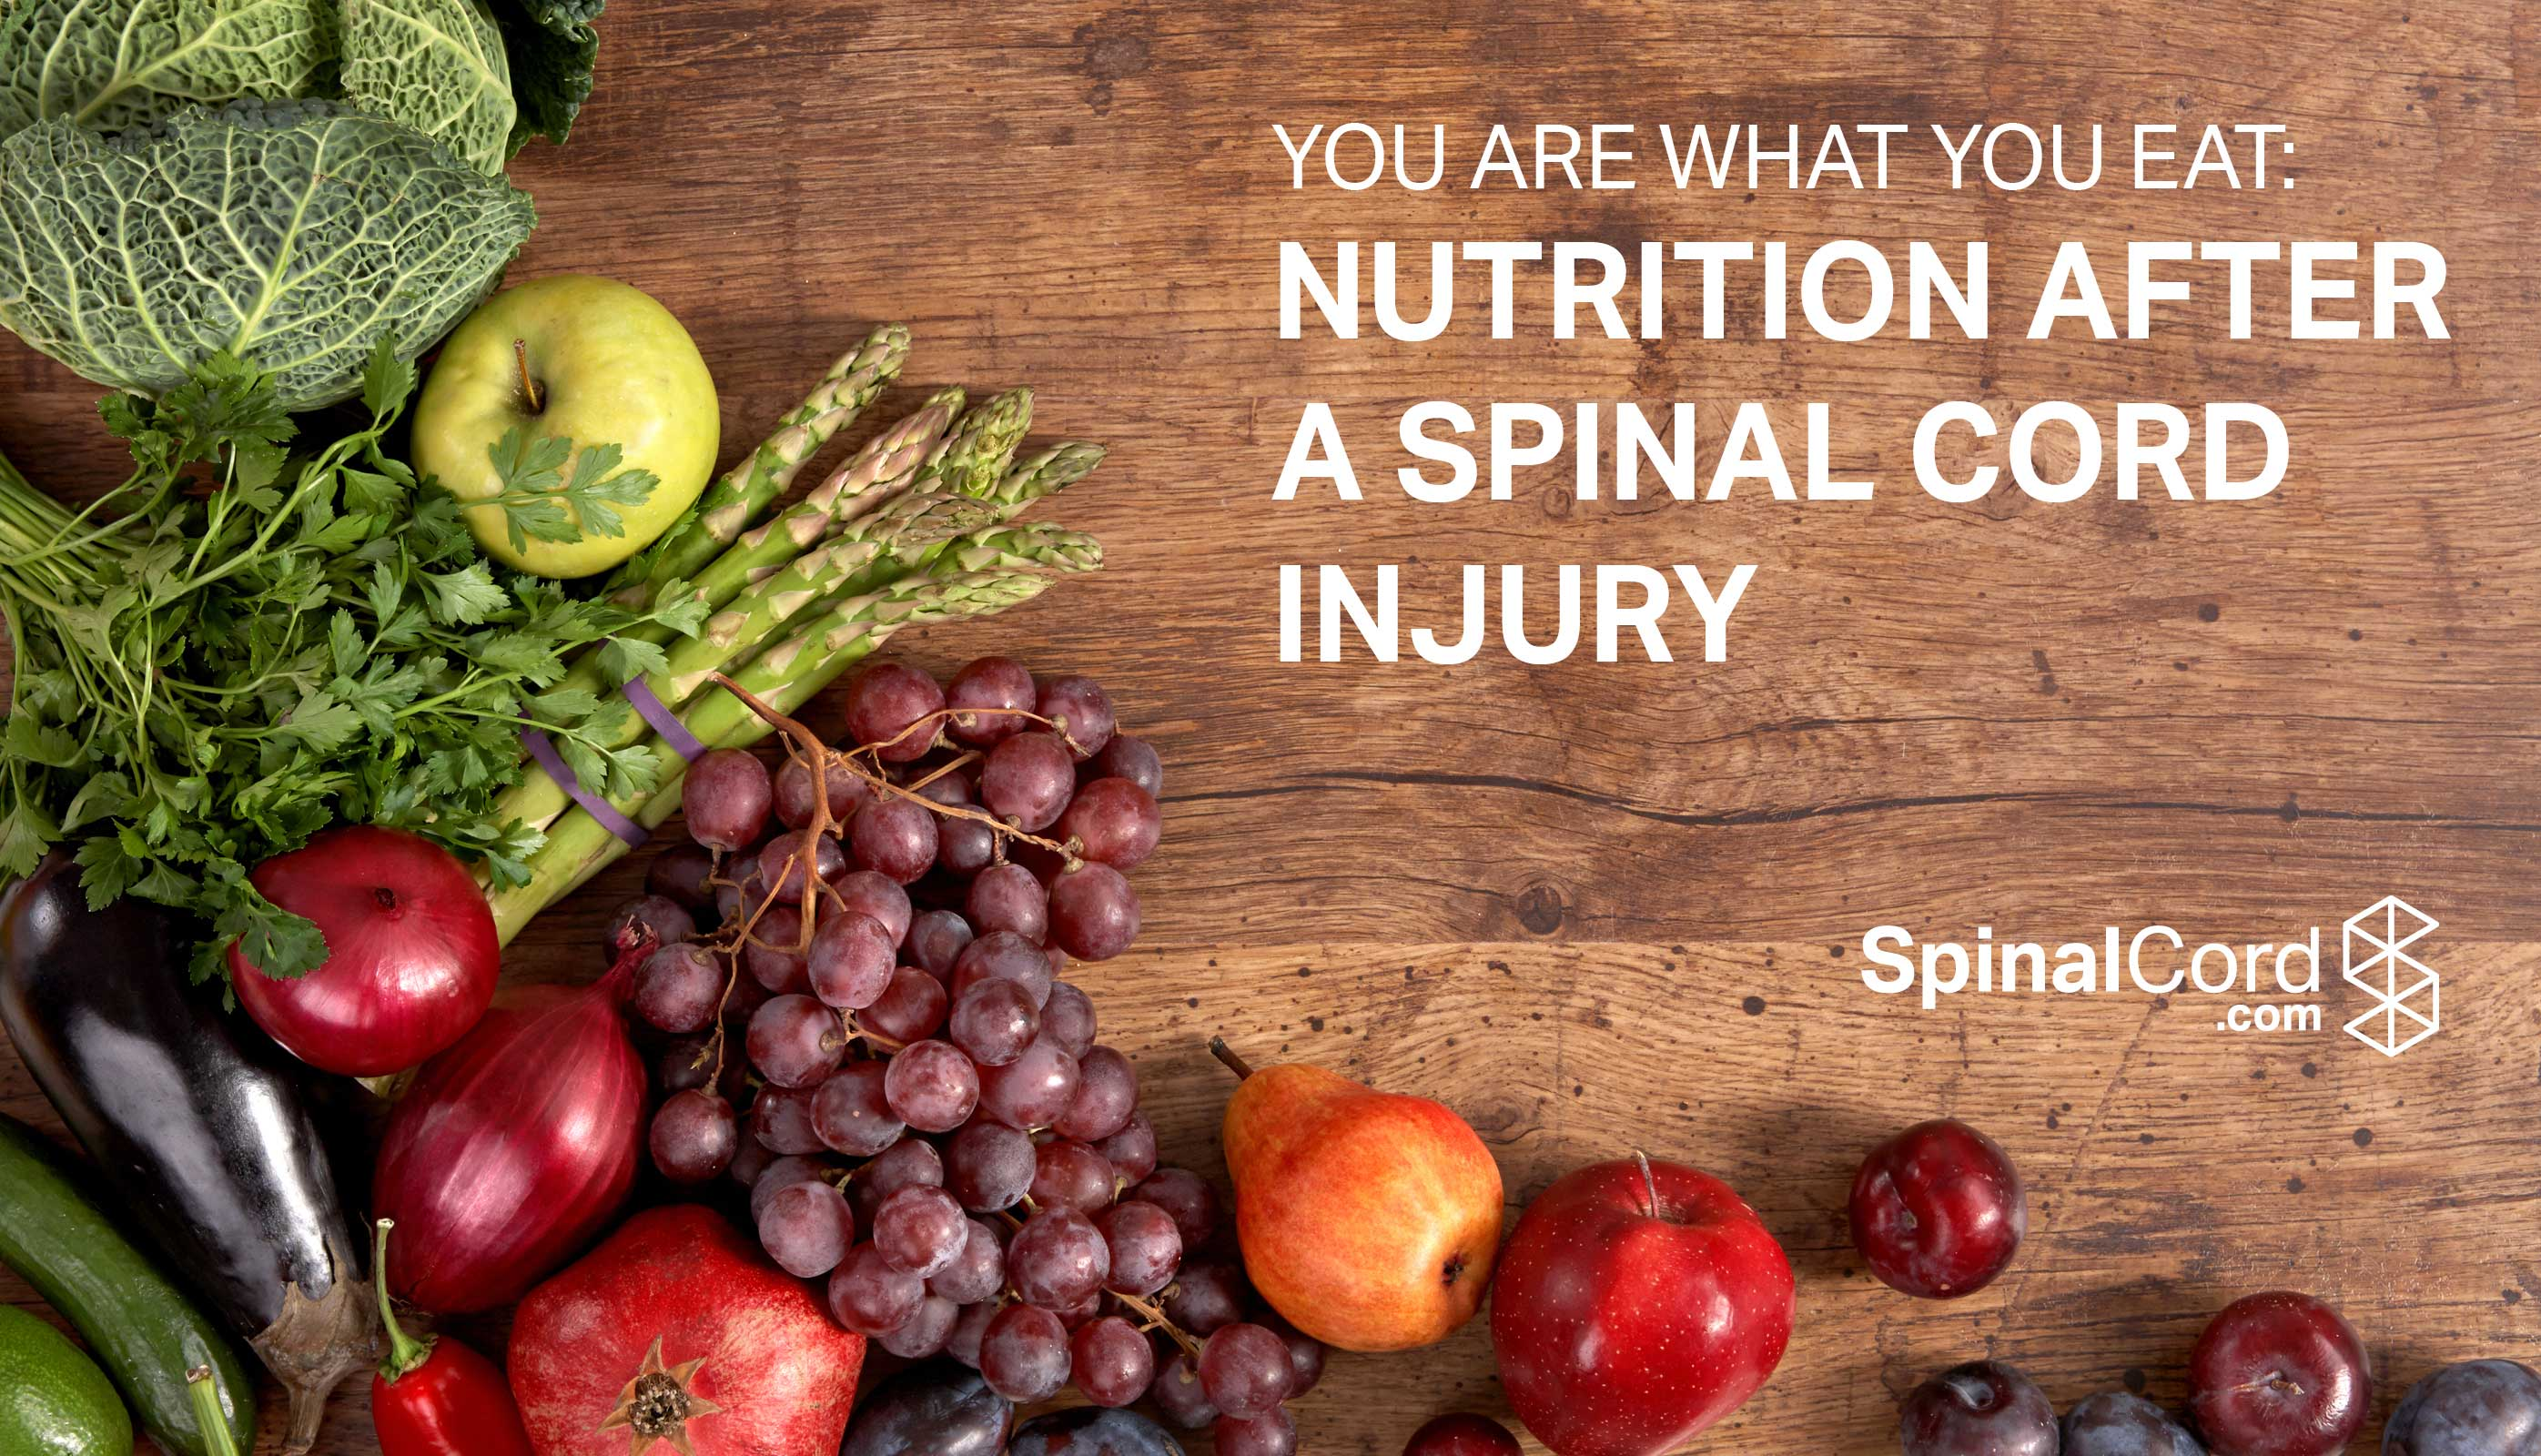 nutrition-after-a-spinal-cord-injury-wb